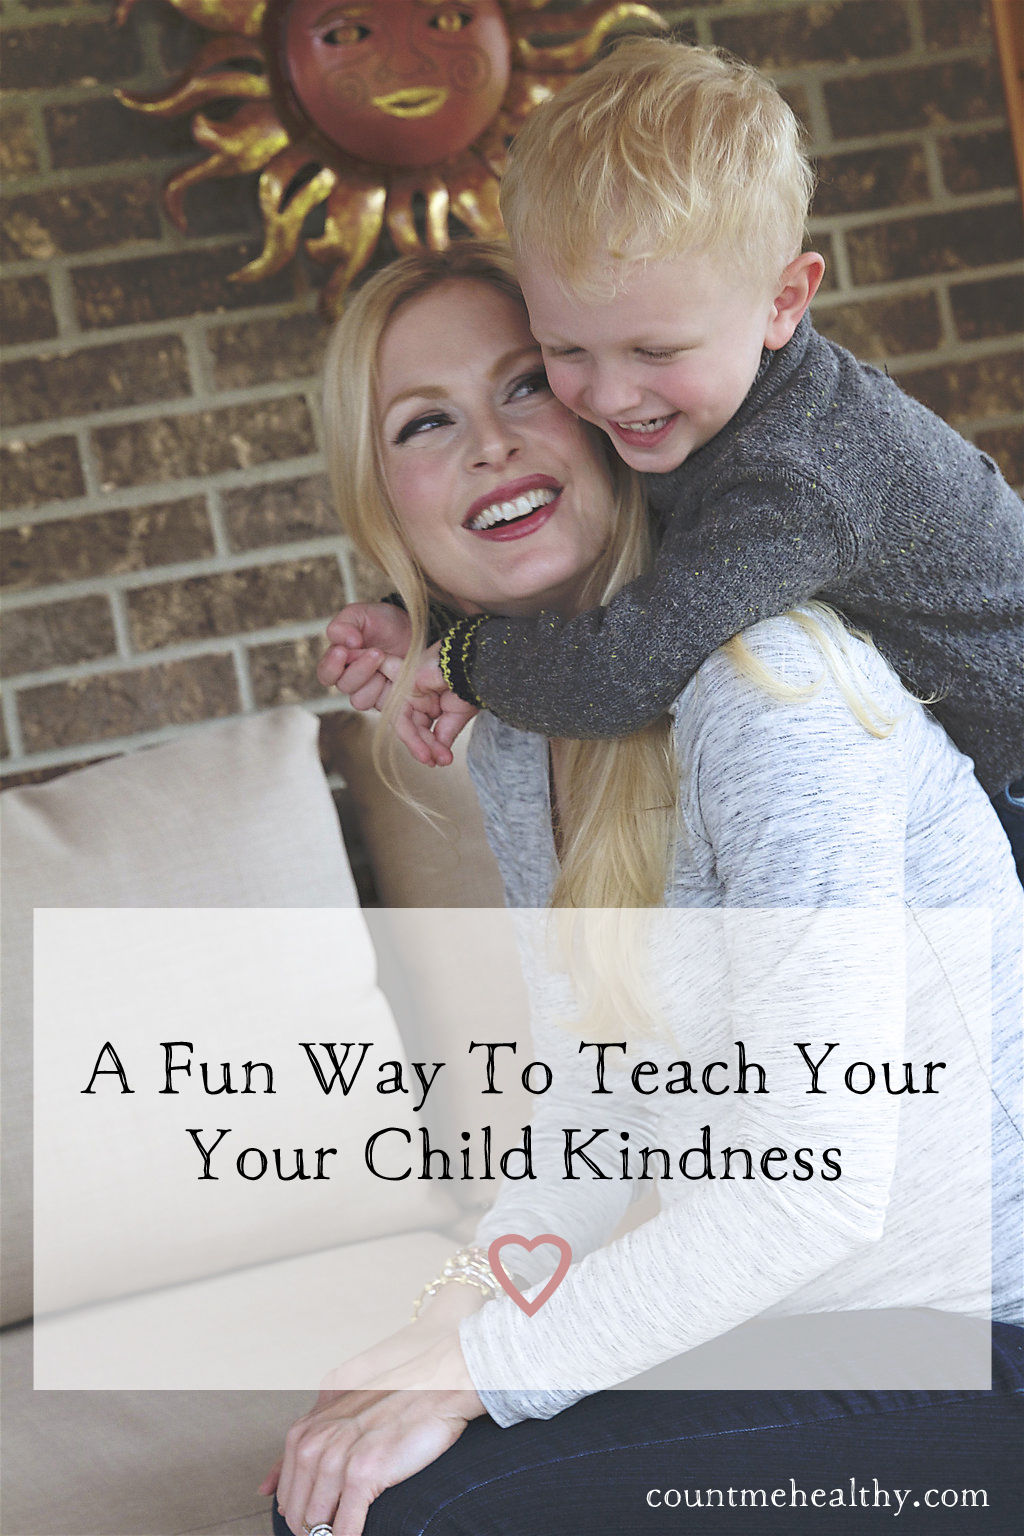 A Fun Way to Teach Your Child Kindness